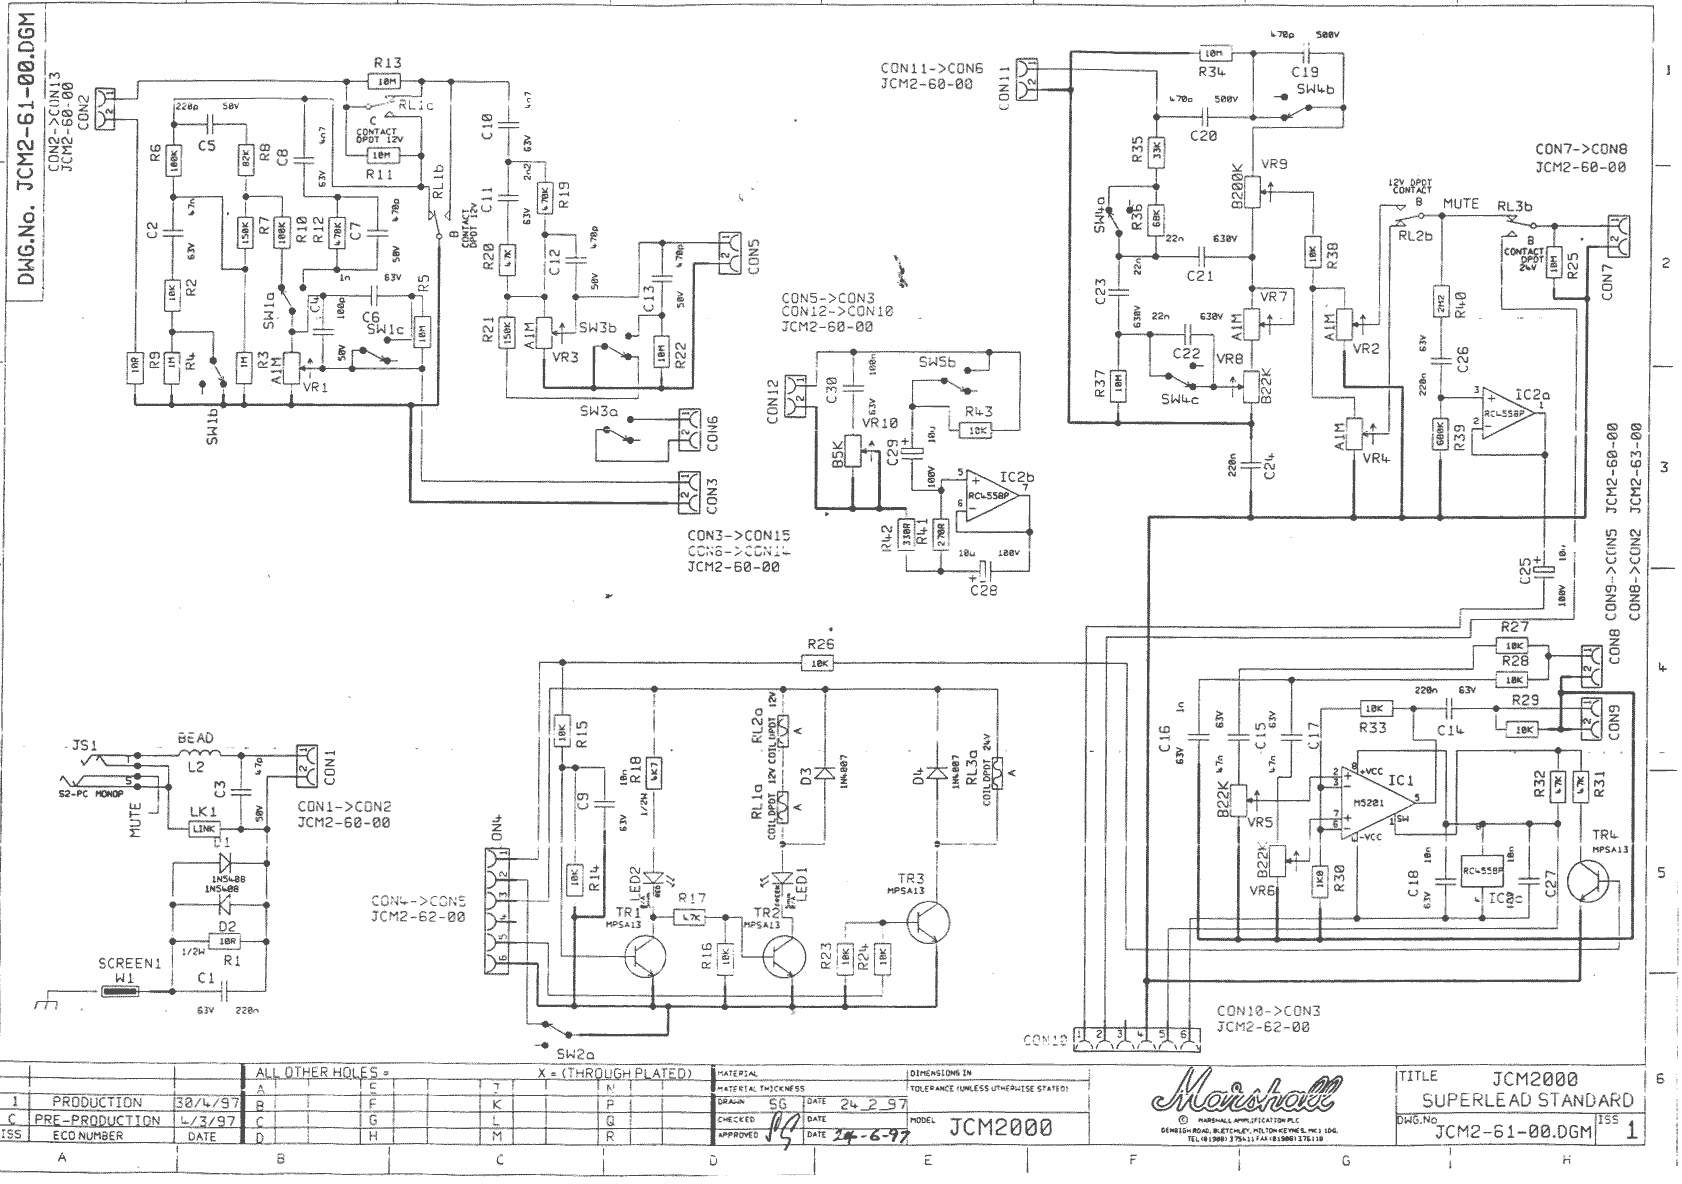 Marshall Jcm 2000 Dsl 50 Schematic - domainslost